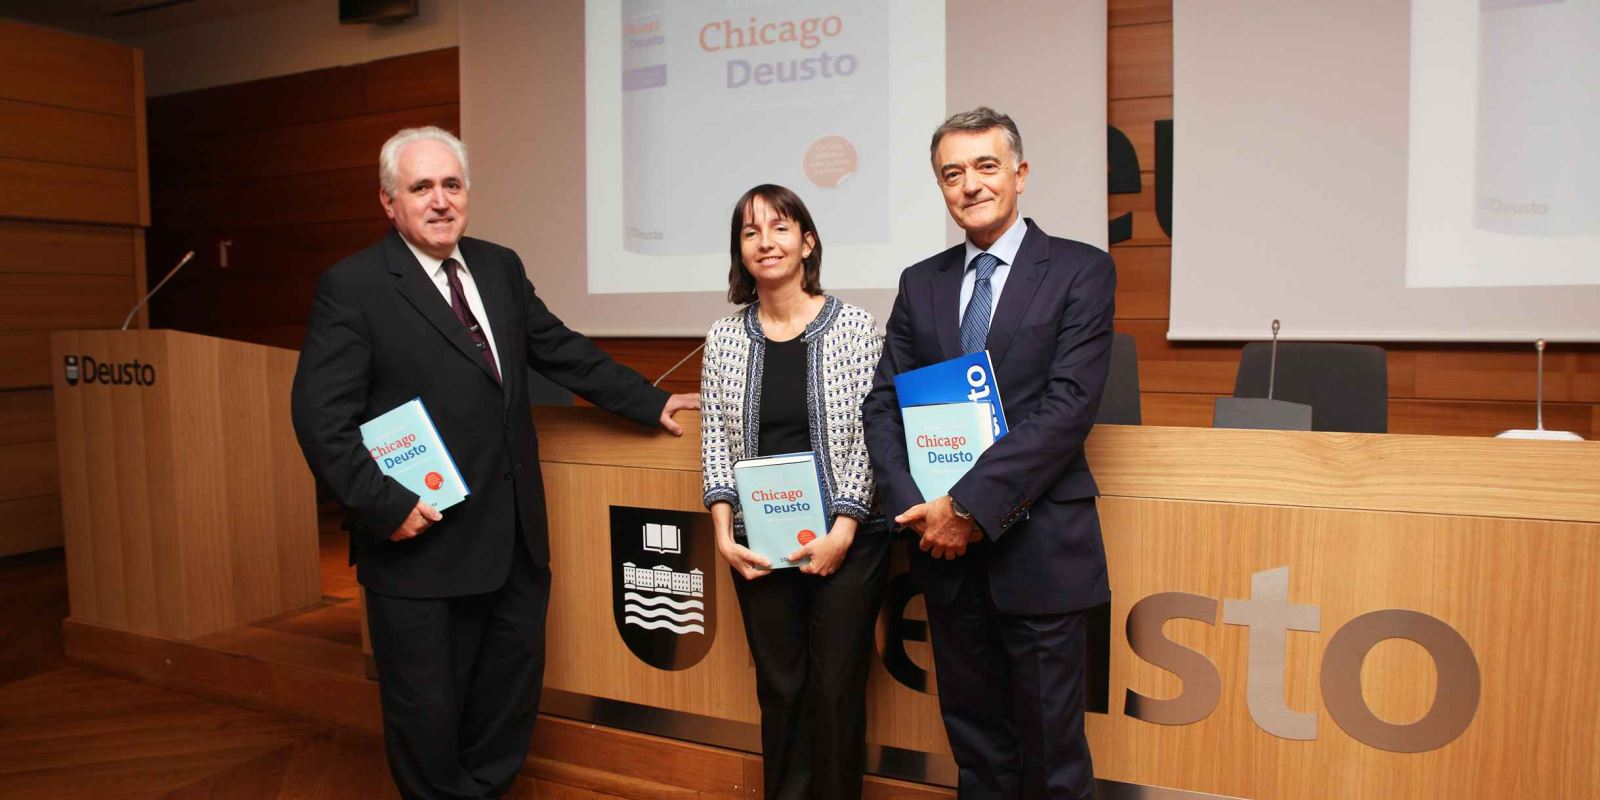 La Universidad presenta su Manual de Estilo Deusto Chicago